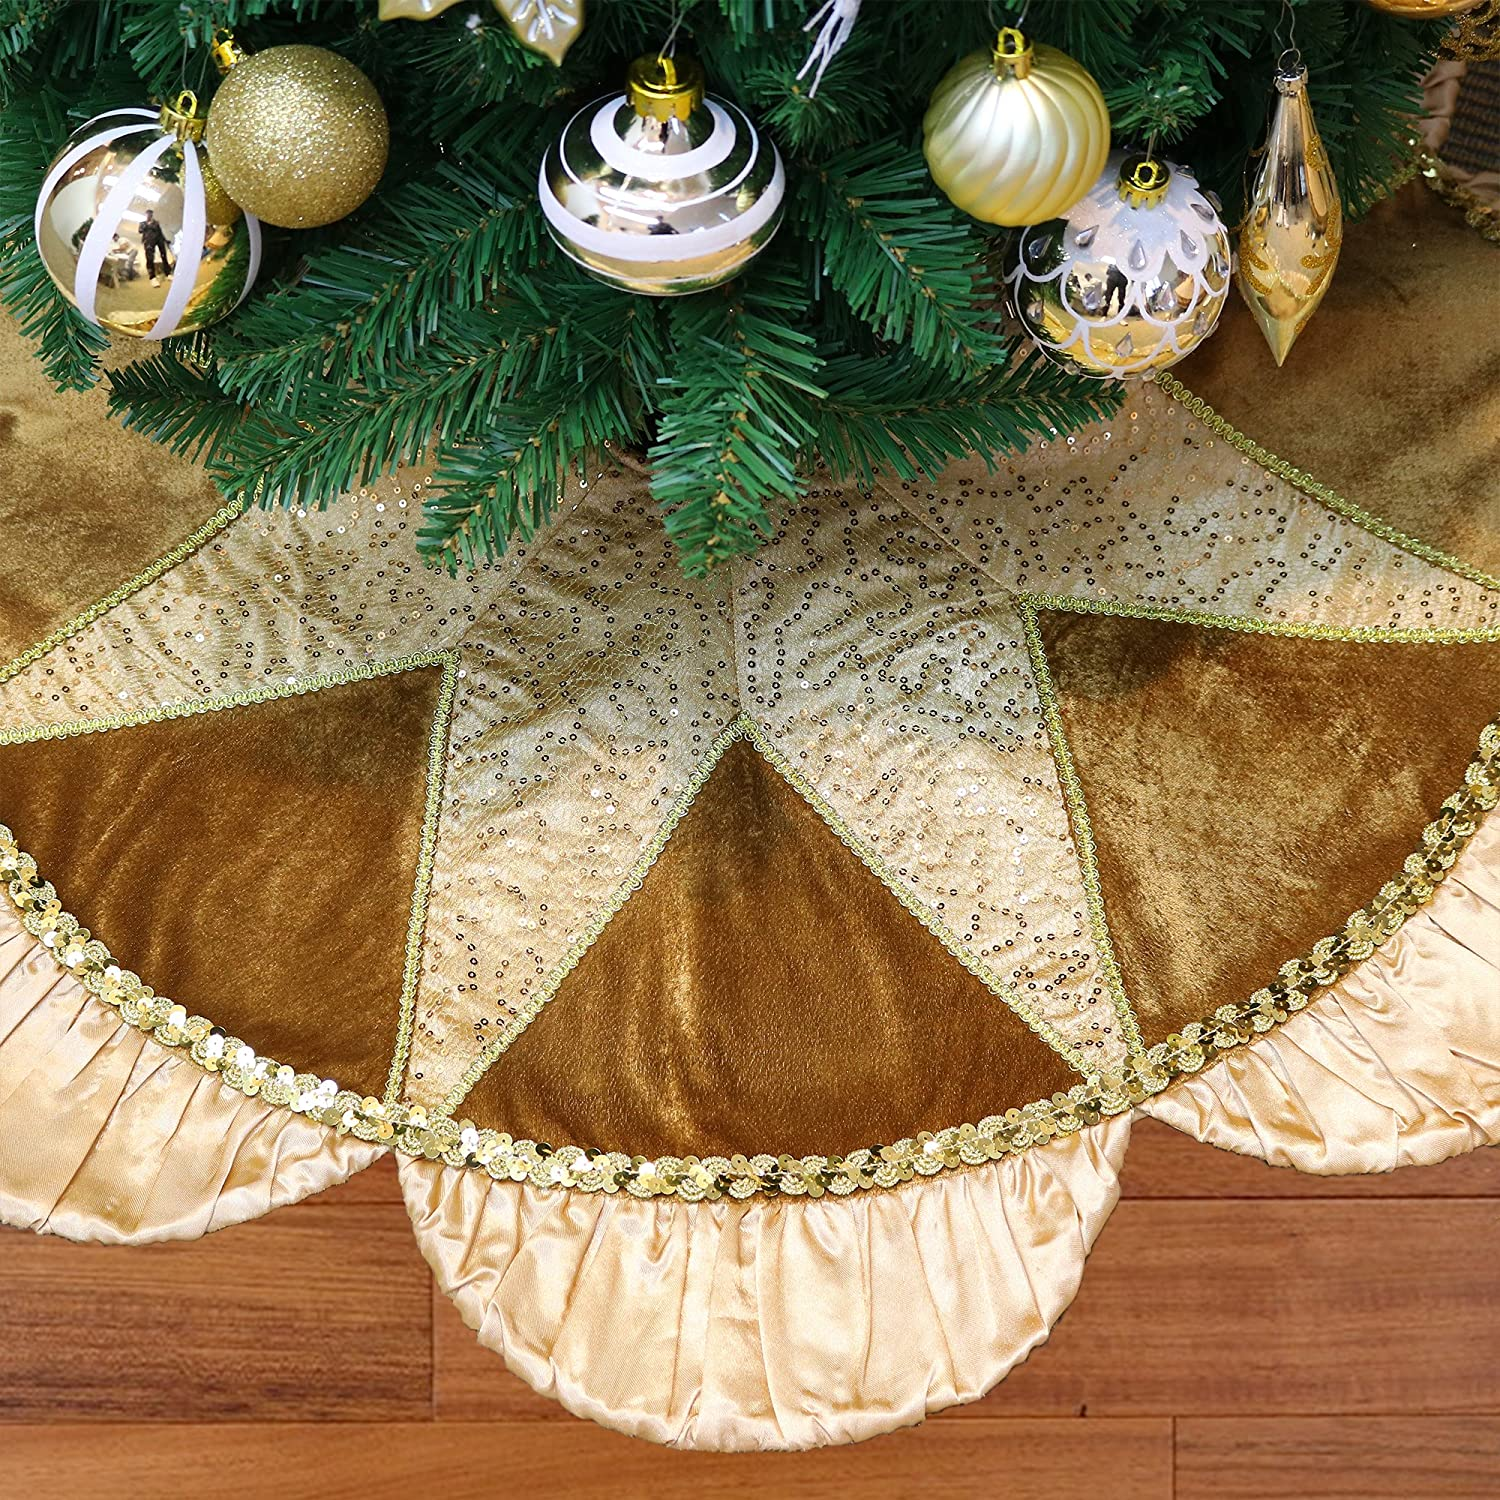 Velvet Tree Skirt Uk Latest and Best Model Skirt 2018